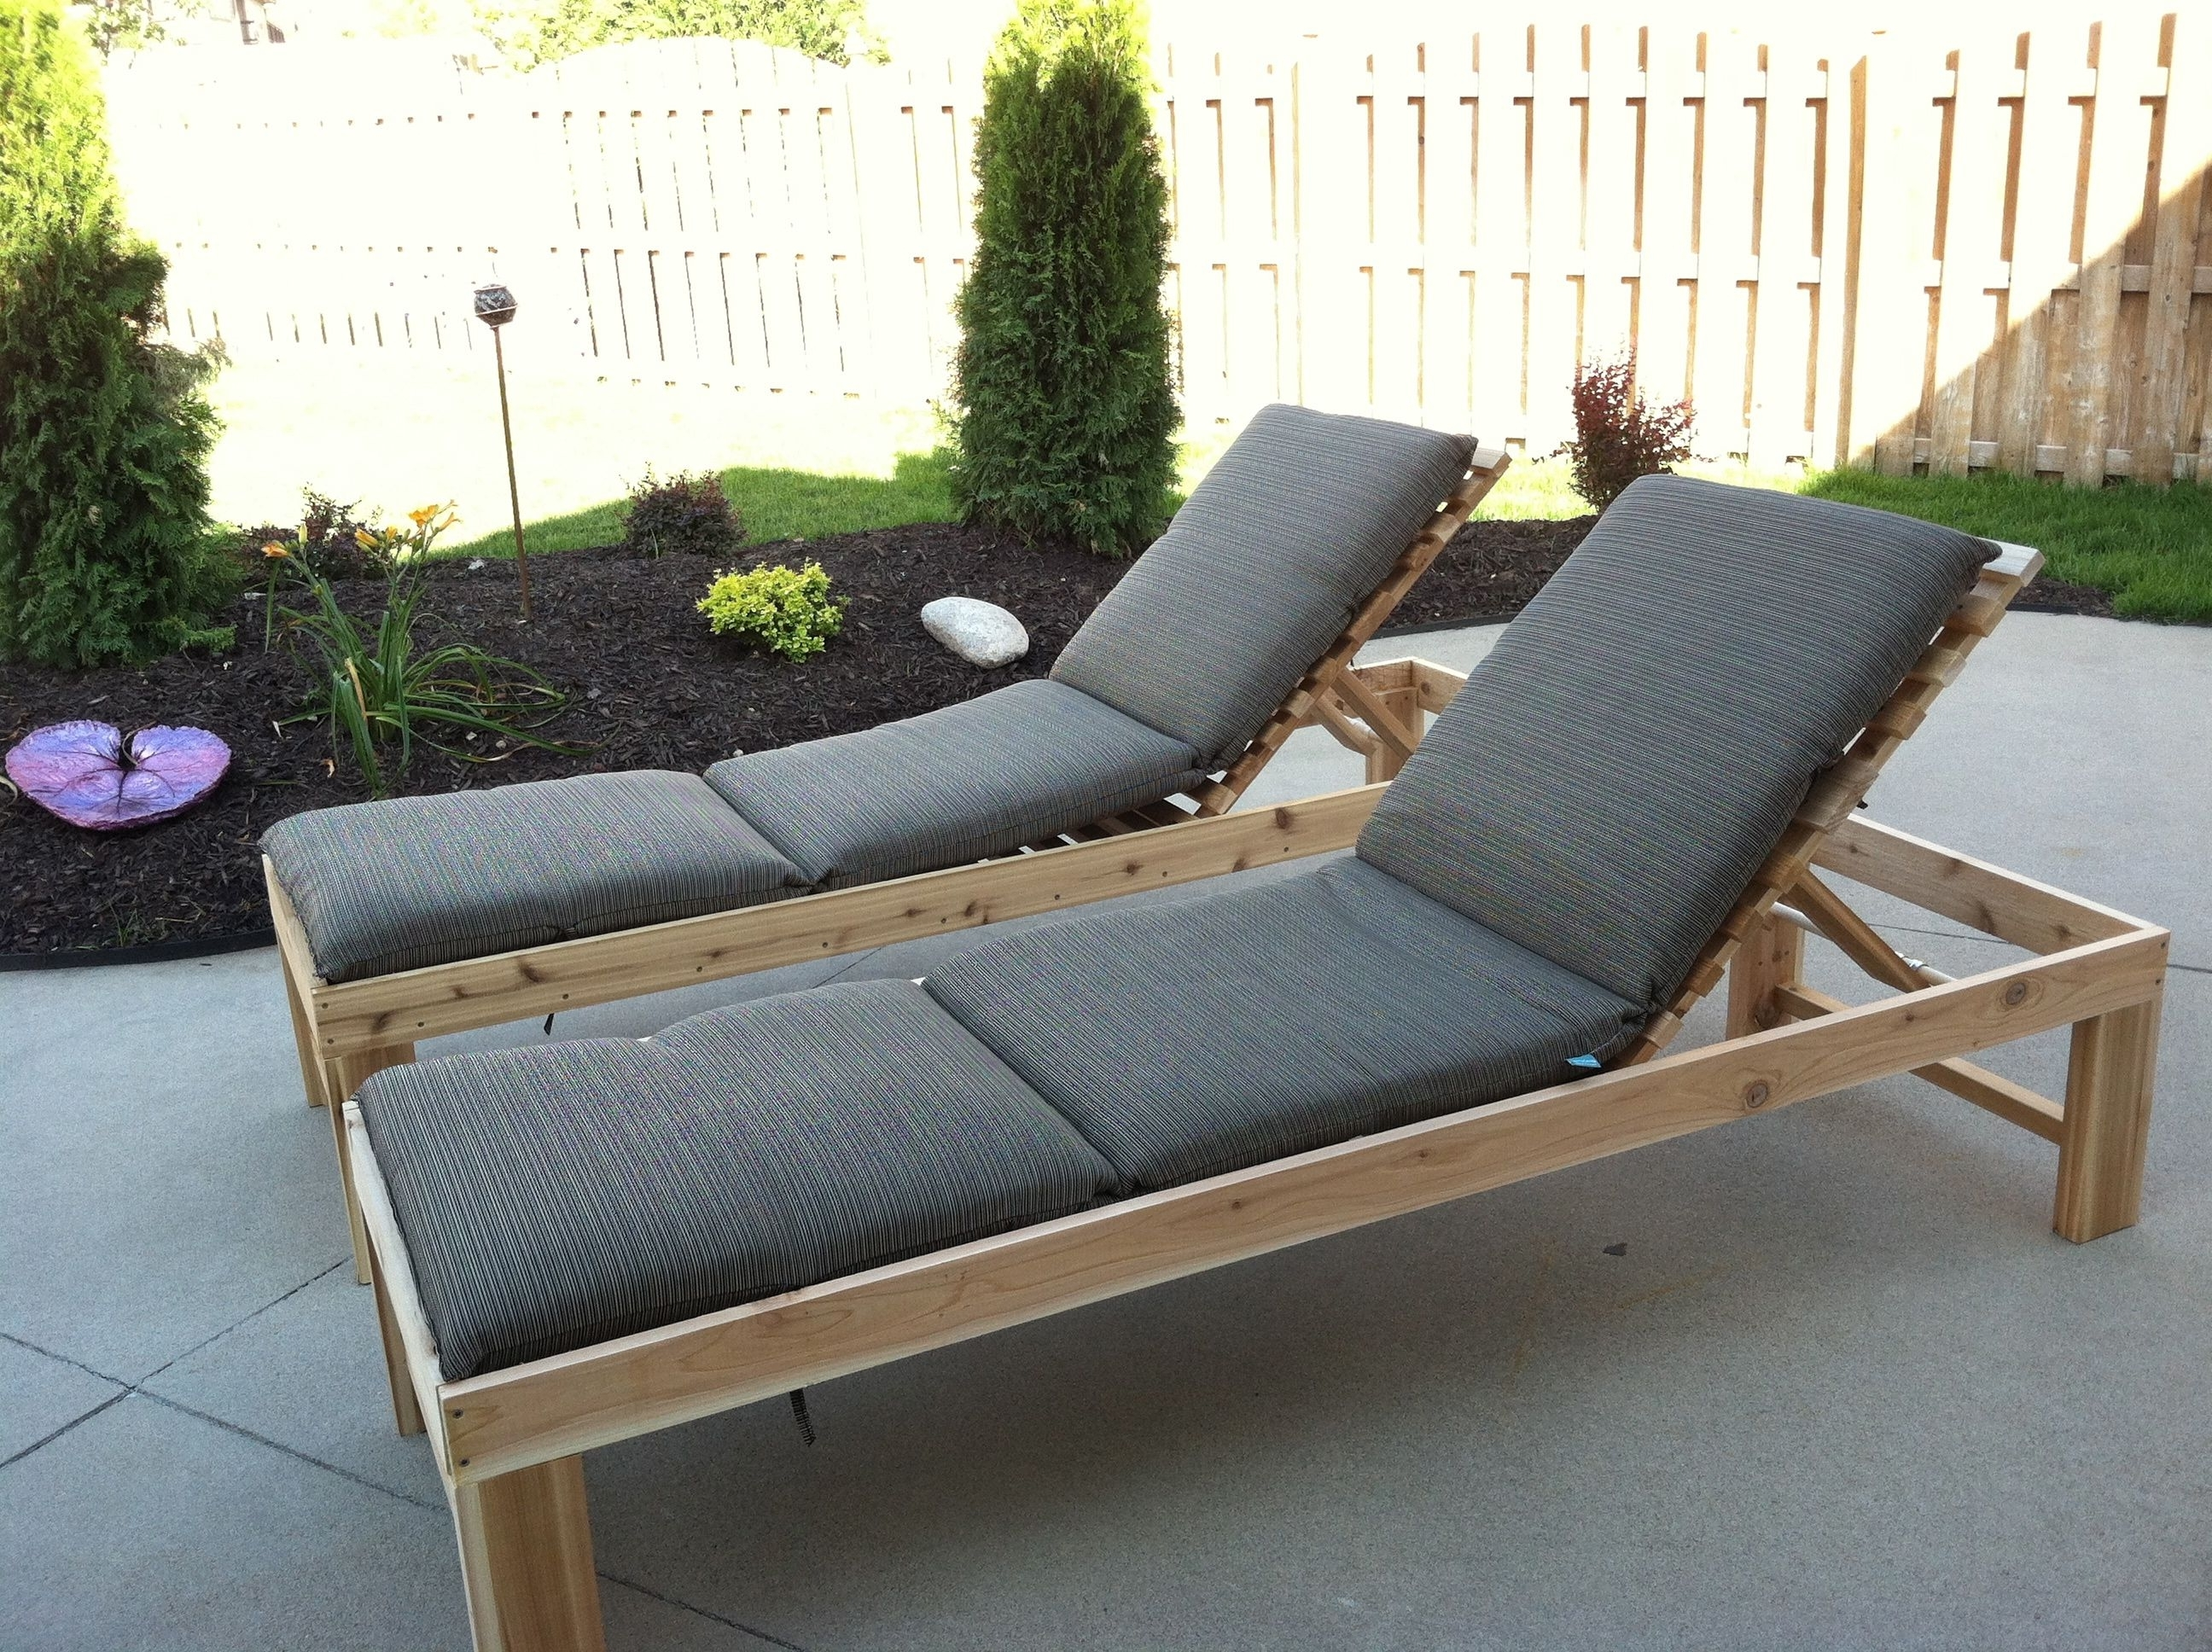 Outdoor Chaise Lounge – Diy Projects For Most Up To Date Wooden Chaise Lounges (View 8 of 15)